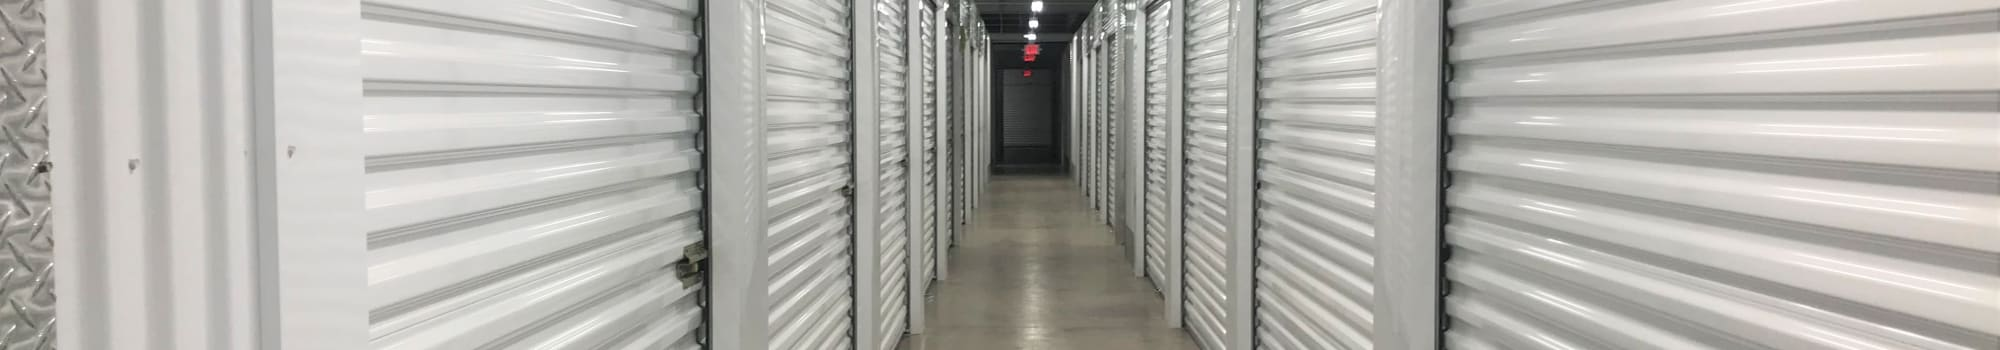 Contact us at Storage 365 in Golden Valley, Minnesota